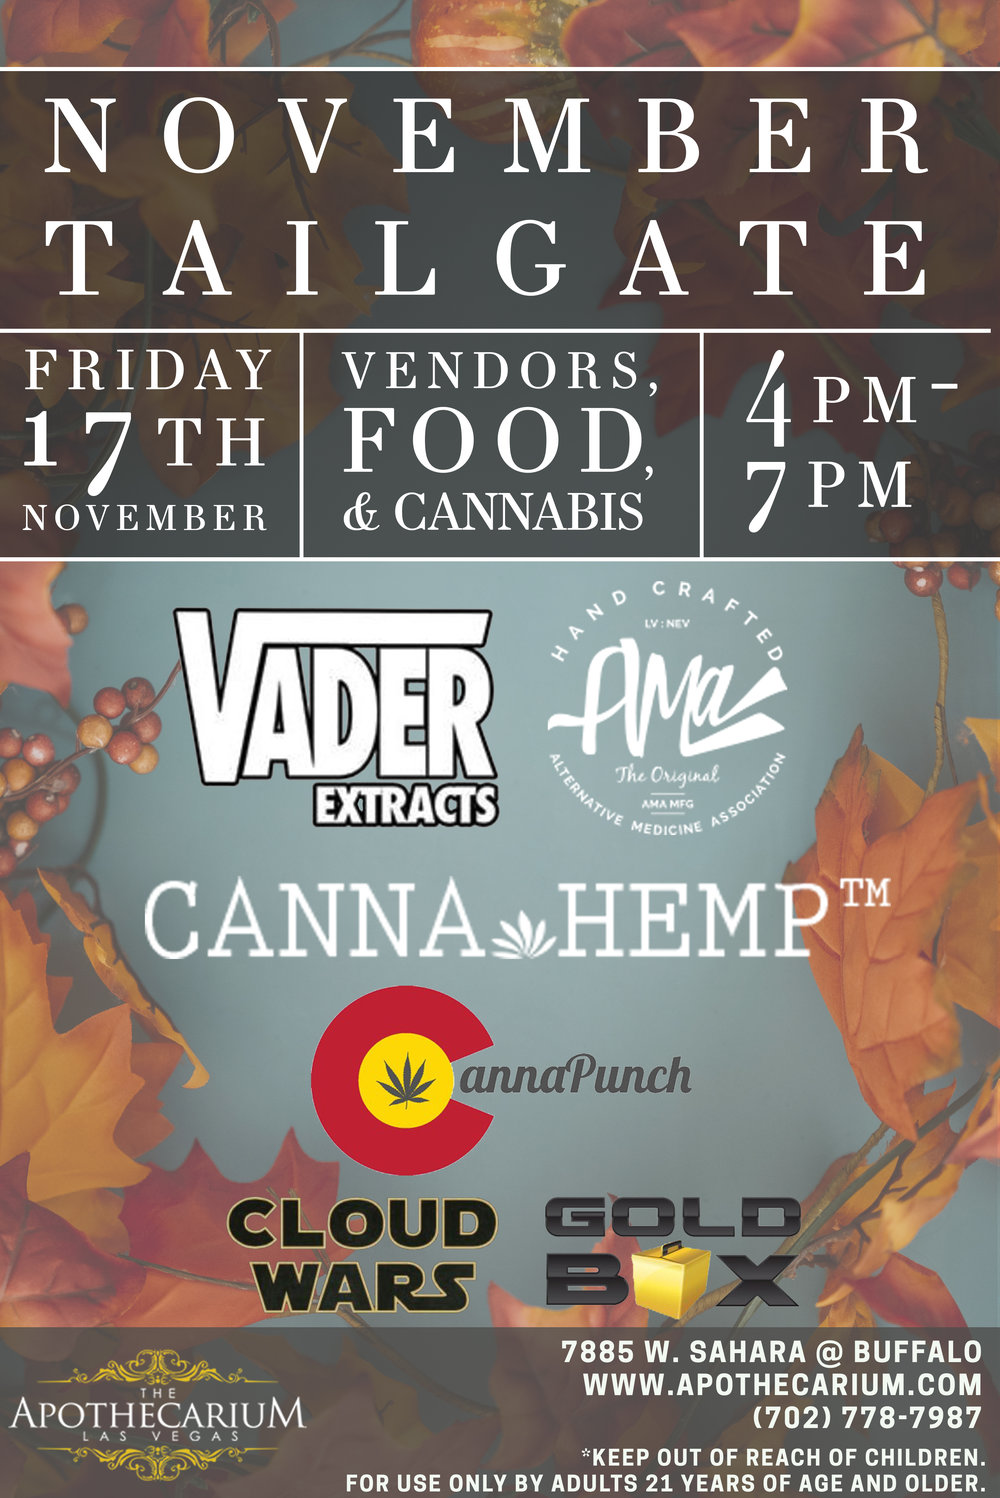 the apothecarium las vegas a medical and recreational cannabis dispensary discusses their november tailgate with ama, vader extracts, cannahemp, cannapunch, cloud wars, and gold box